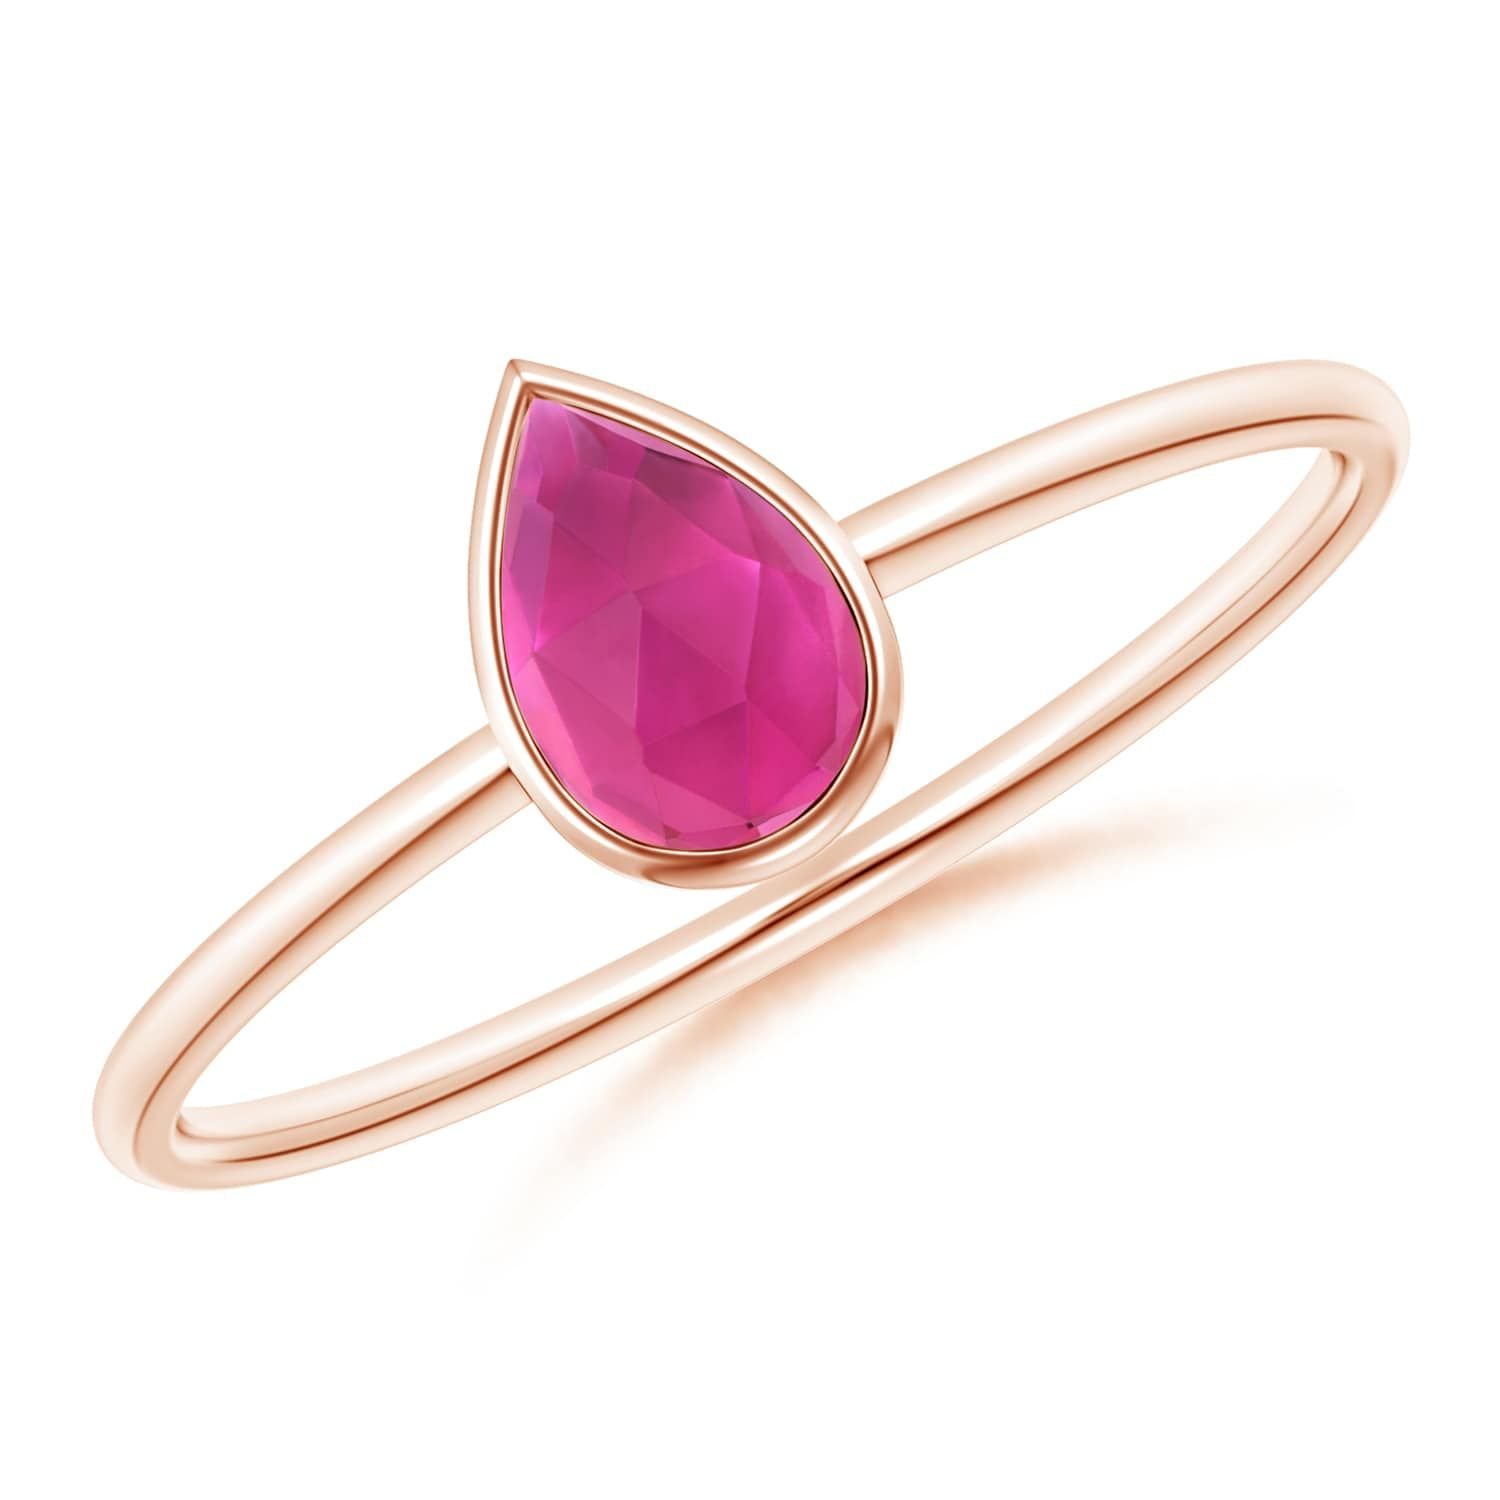 Angara Pink Tourmaline Solitaire Ring in 14K Yellow Gold N9A1ER